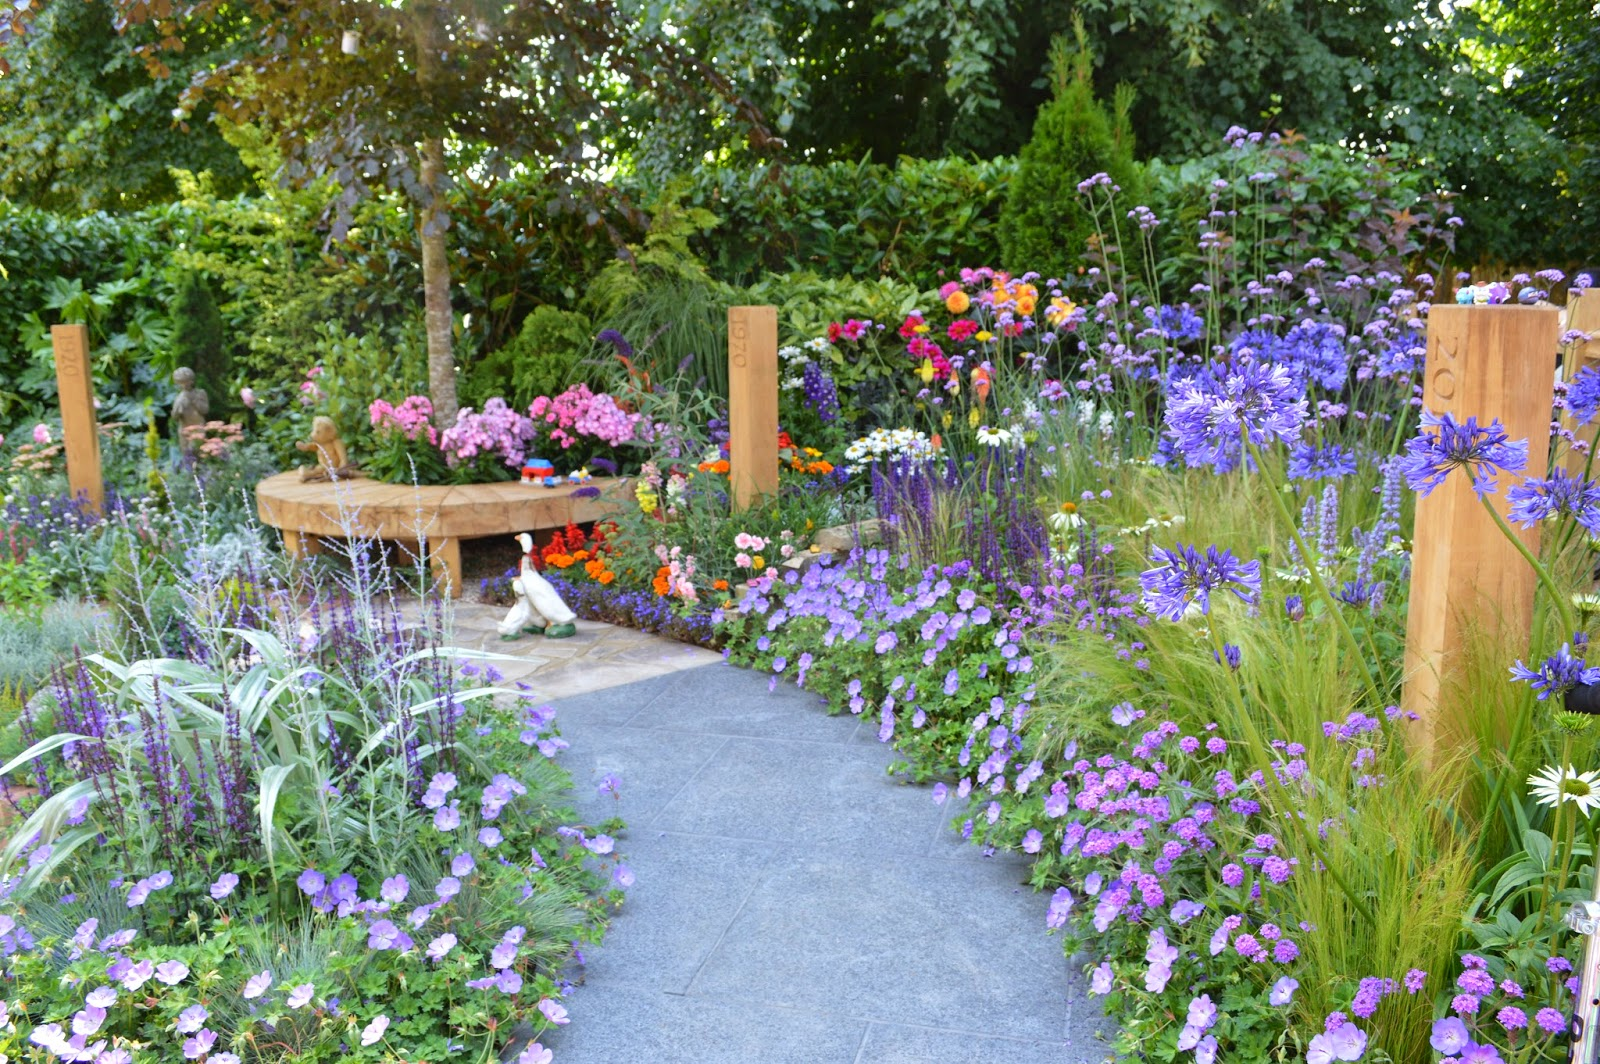 Hampton court flower show for a few gardens more - Hampton court flower show ...